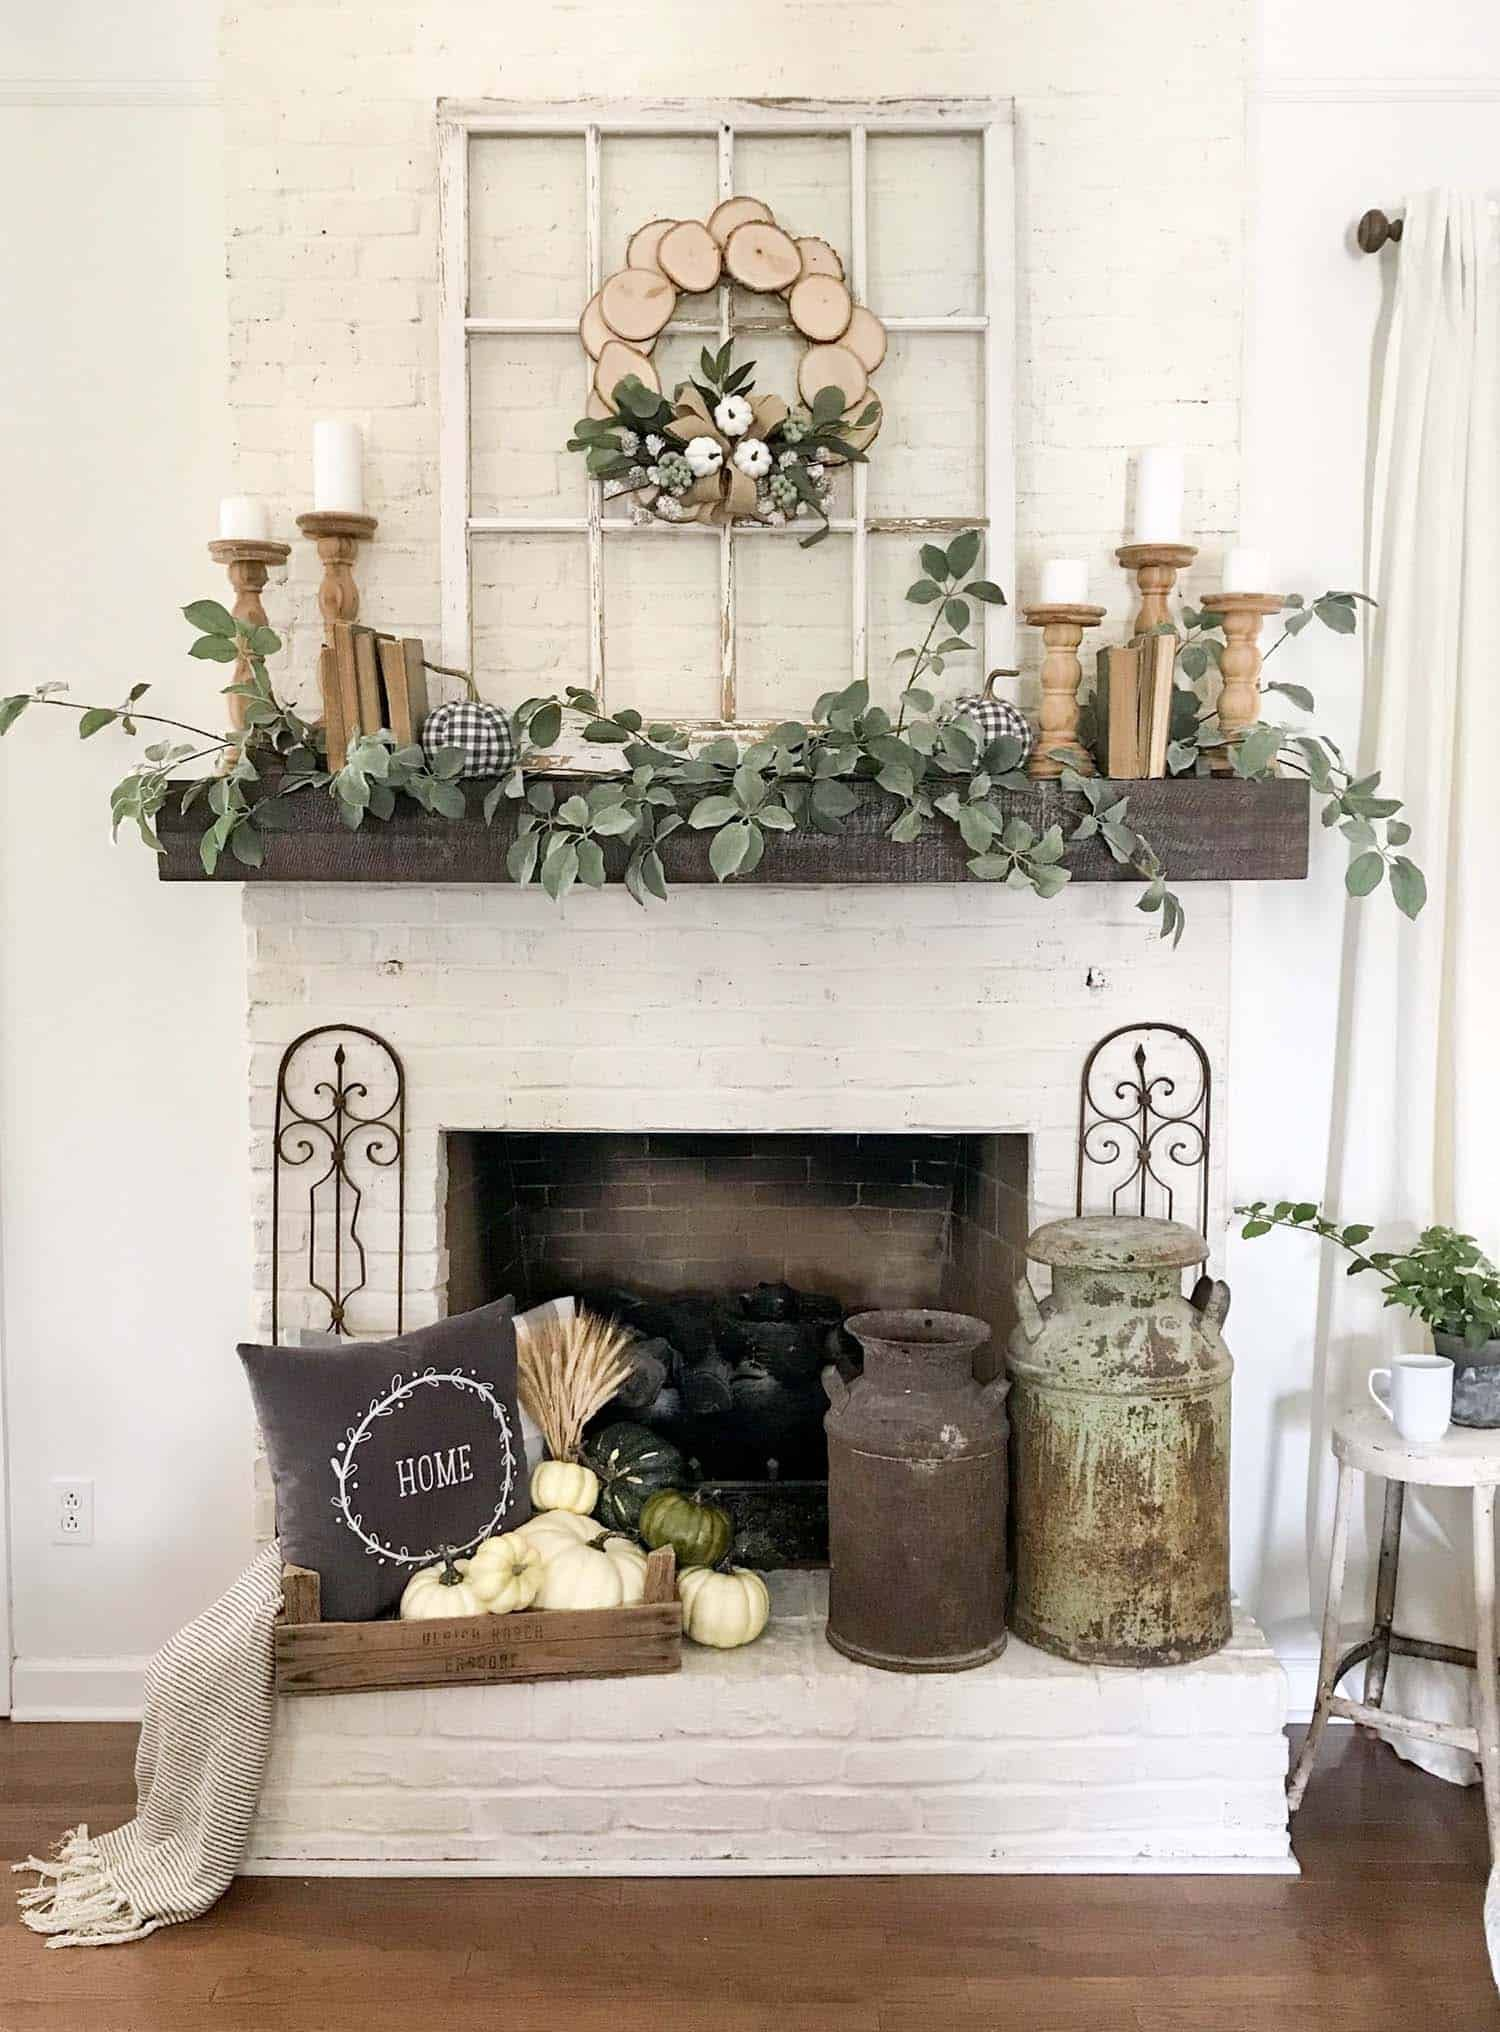 20 Unbelievably Inspiring Fall Mantel Decorating Ideas Farmhouse Mantle Decor Fireplace Mantle Decor Fireplace Mantel Decor